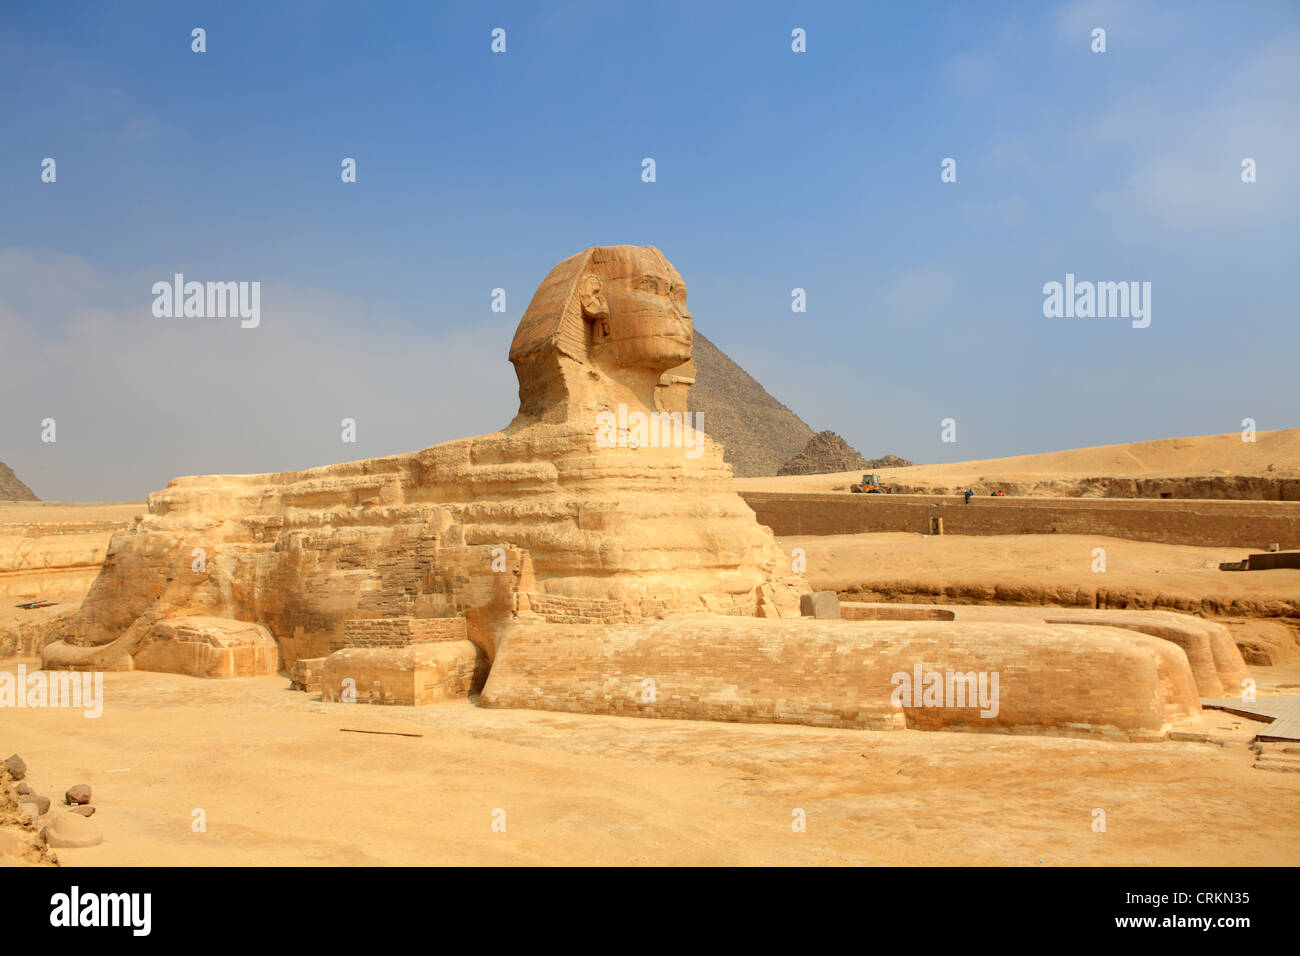 The Great Sphinx of Giza, Egypt - Stock Image